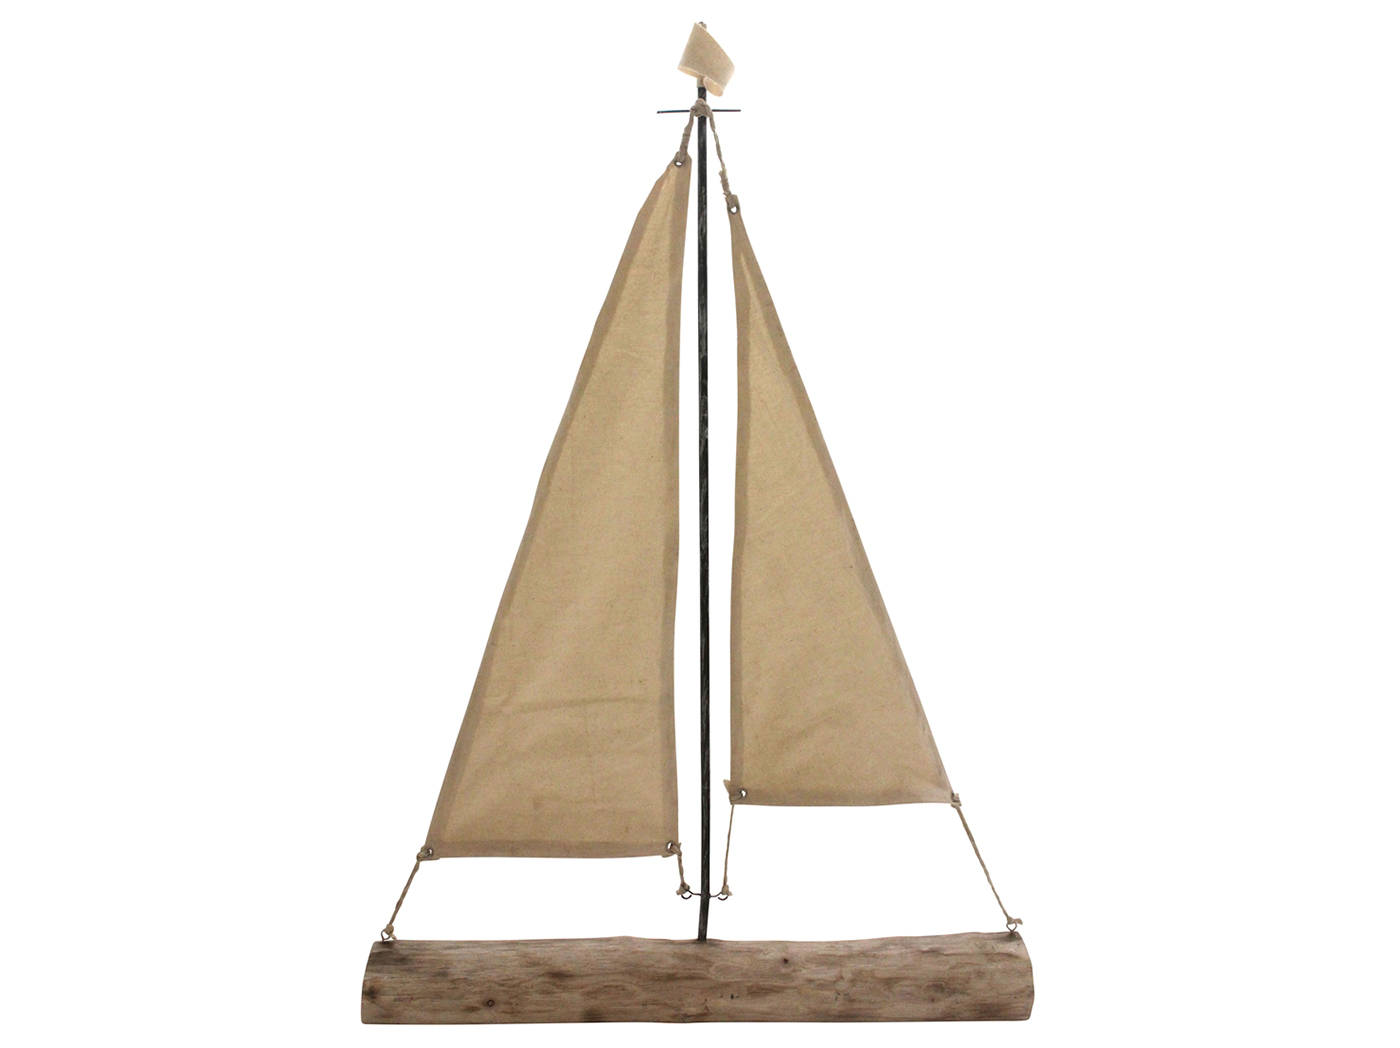 "Mango Wood Sailboat Decor 22""W x 32""H"